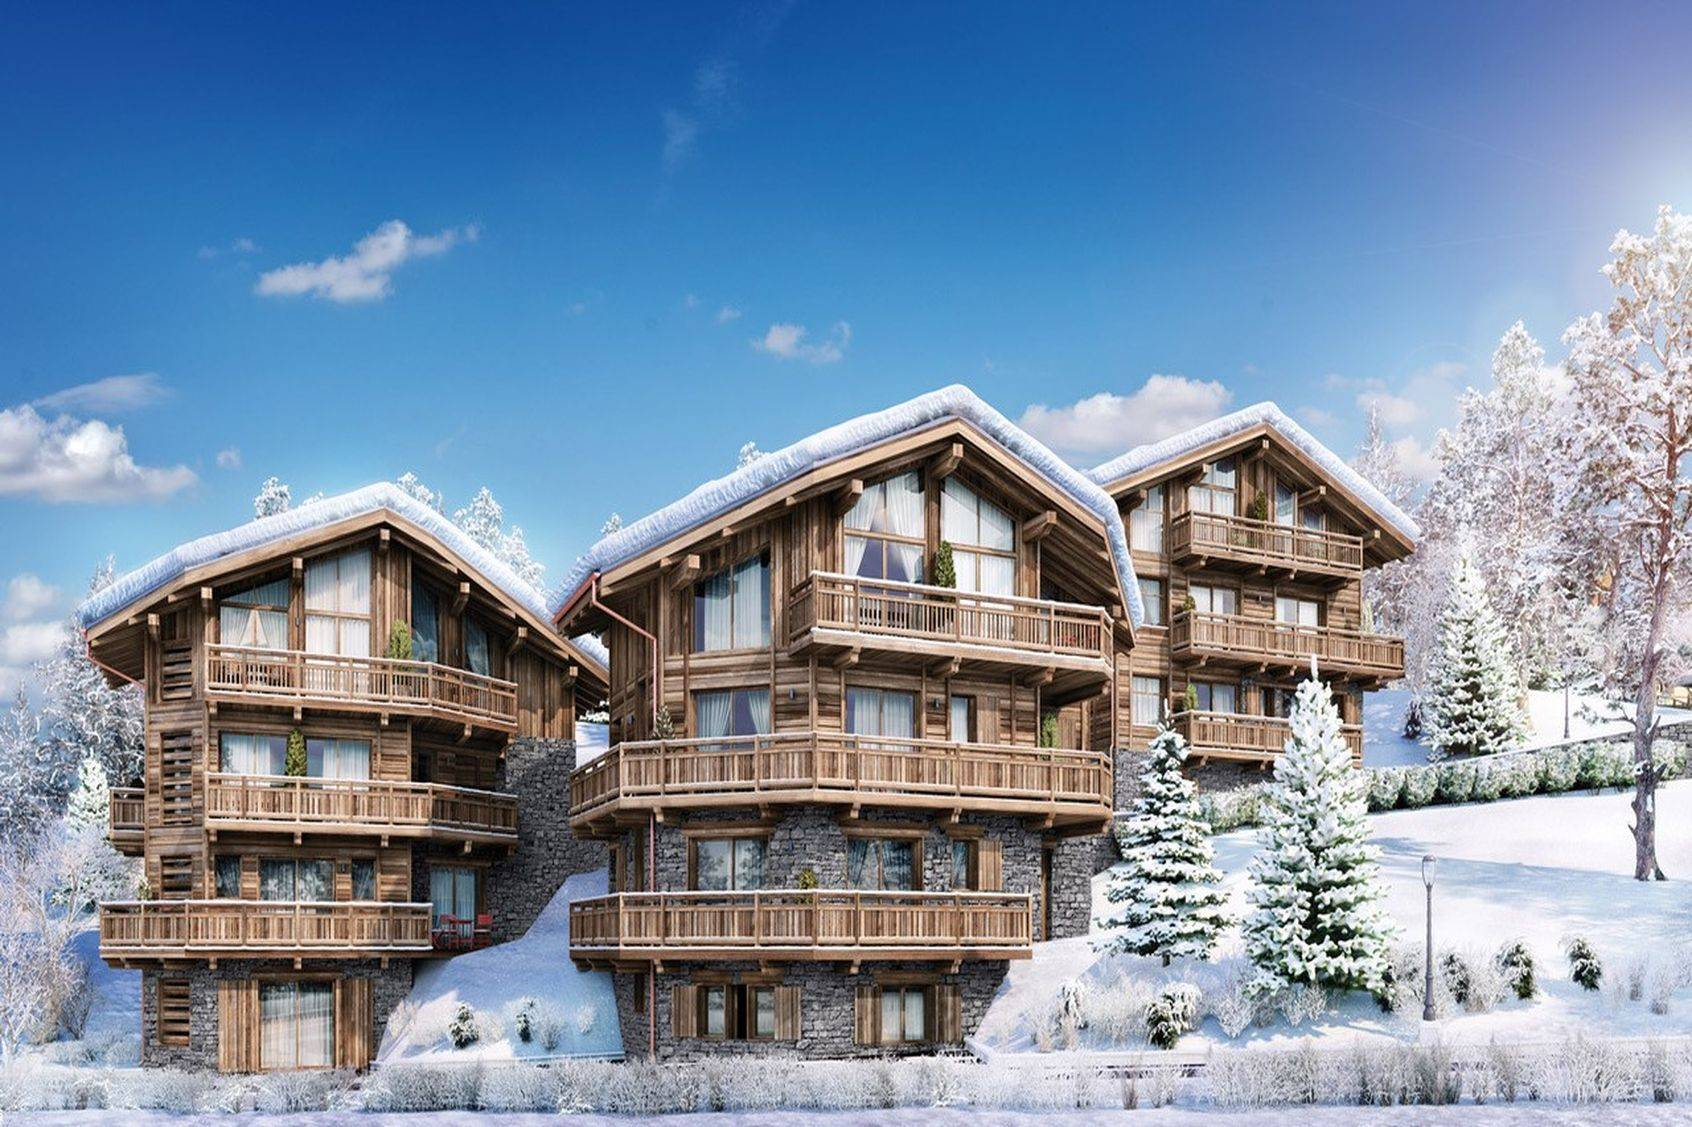 New development: Les Chalets de la Stelvio